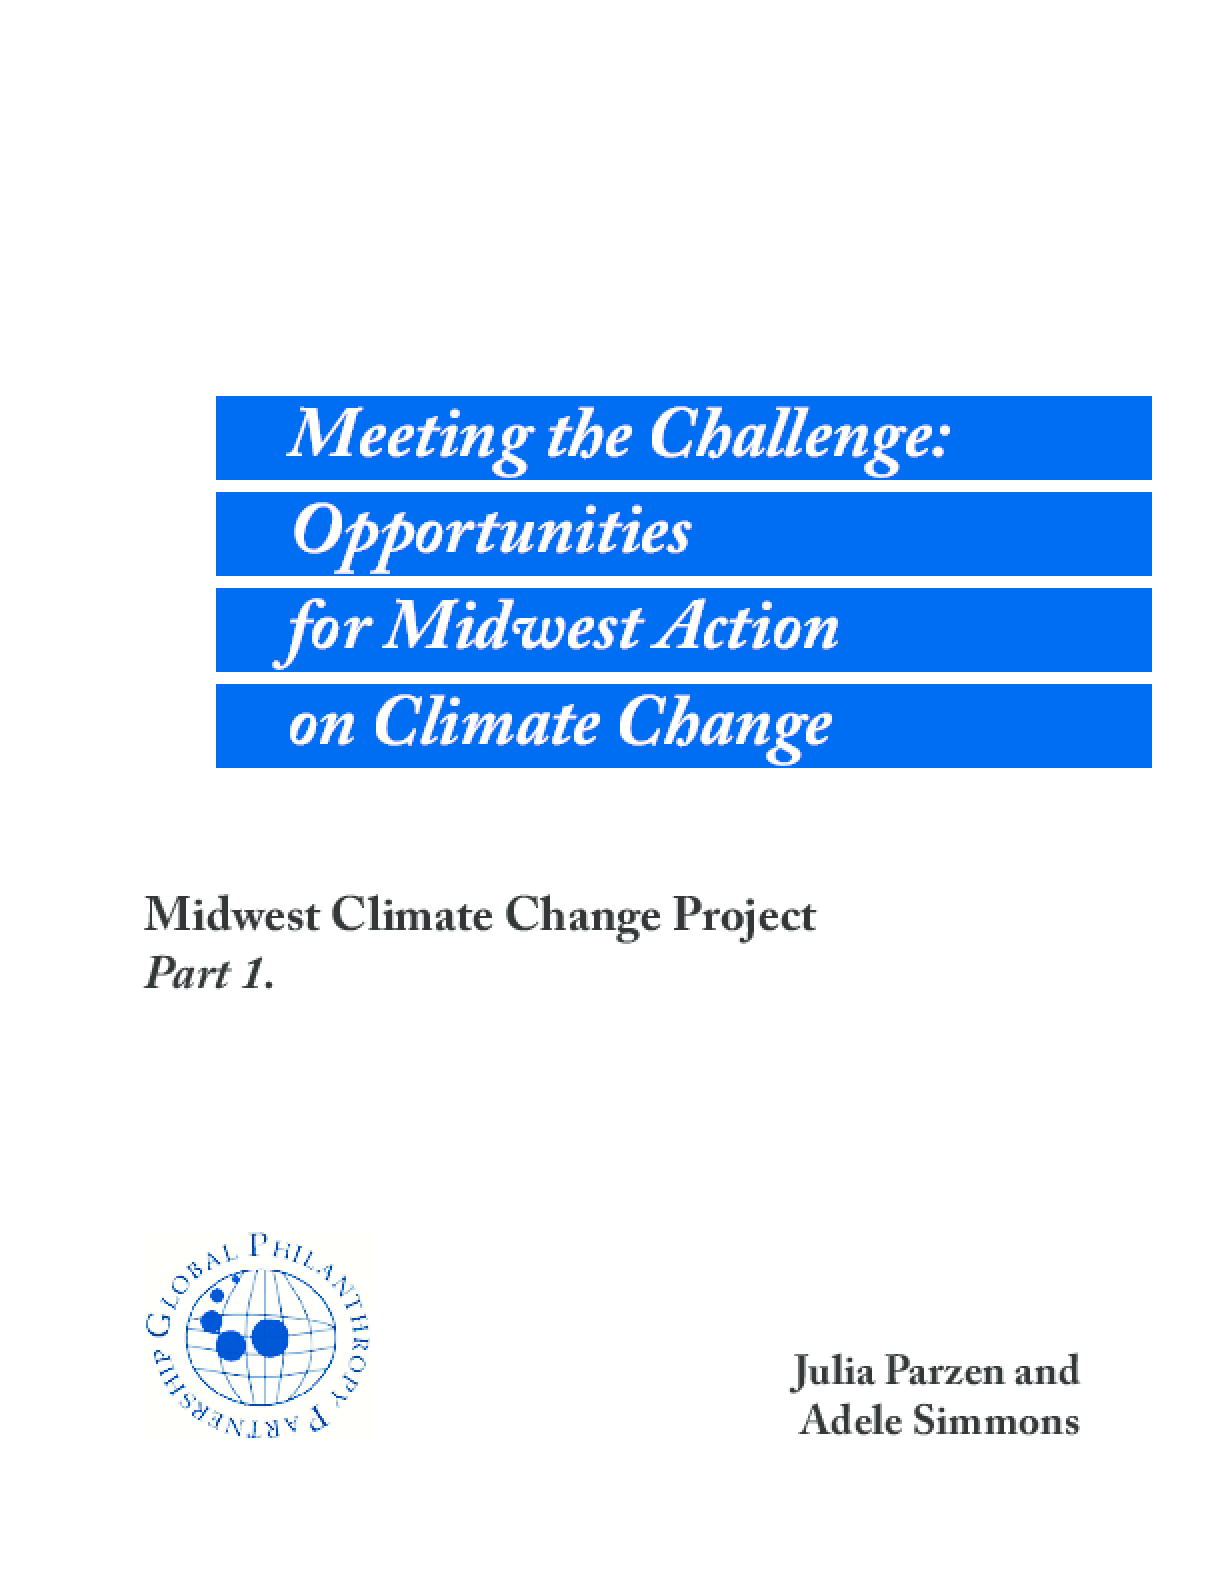 Meeting the Challenge: Opportunities for Midwest Action on Climate Change